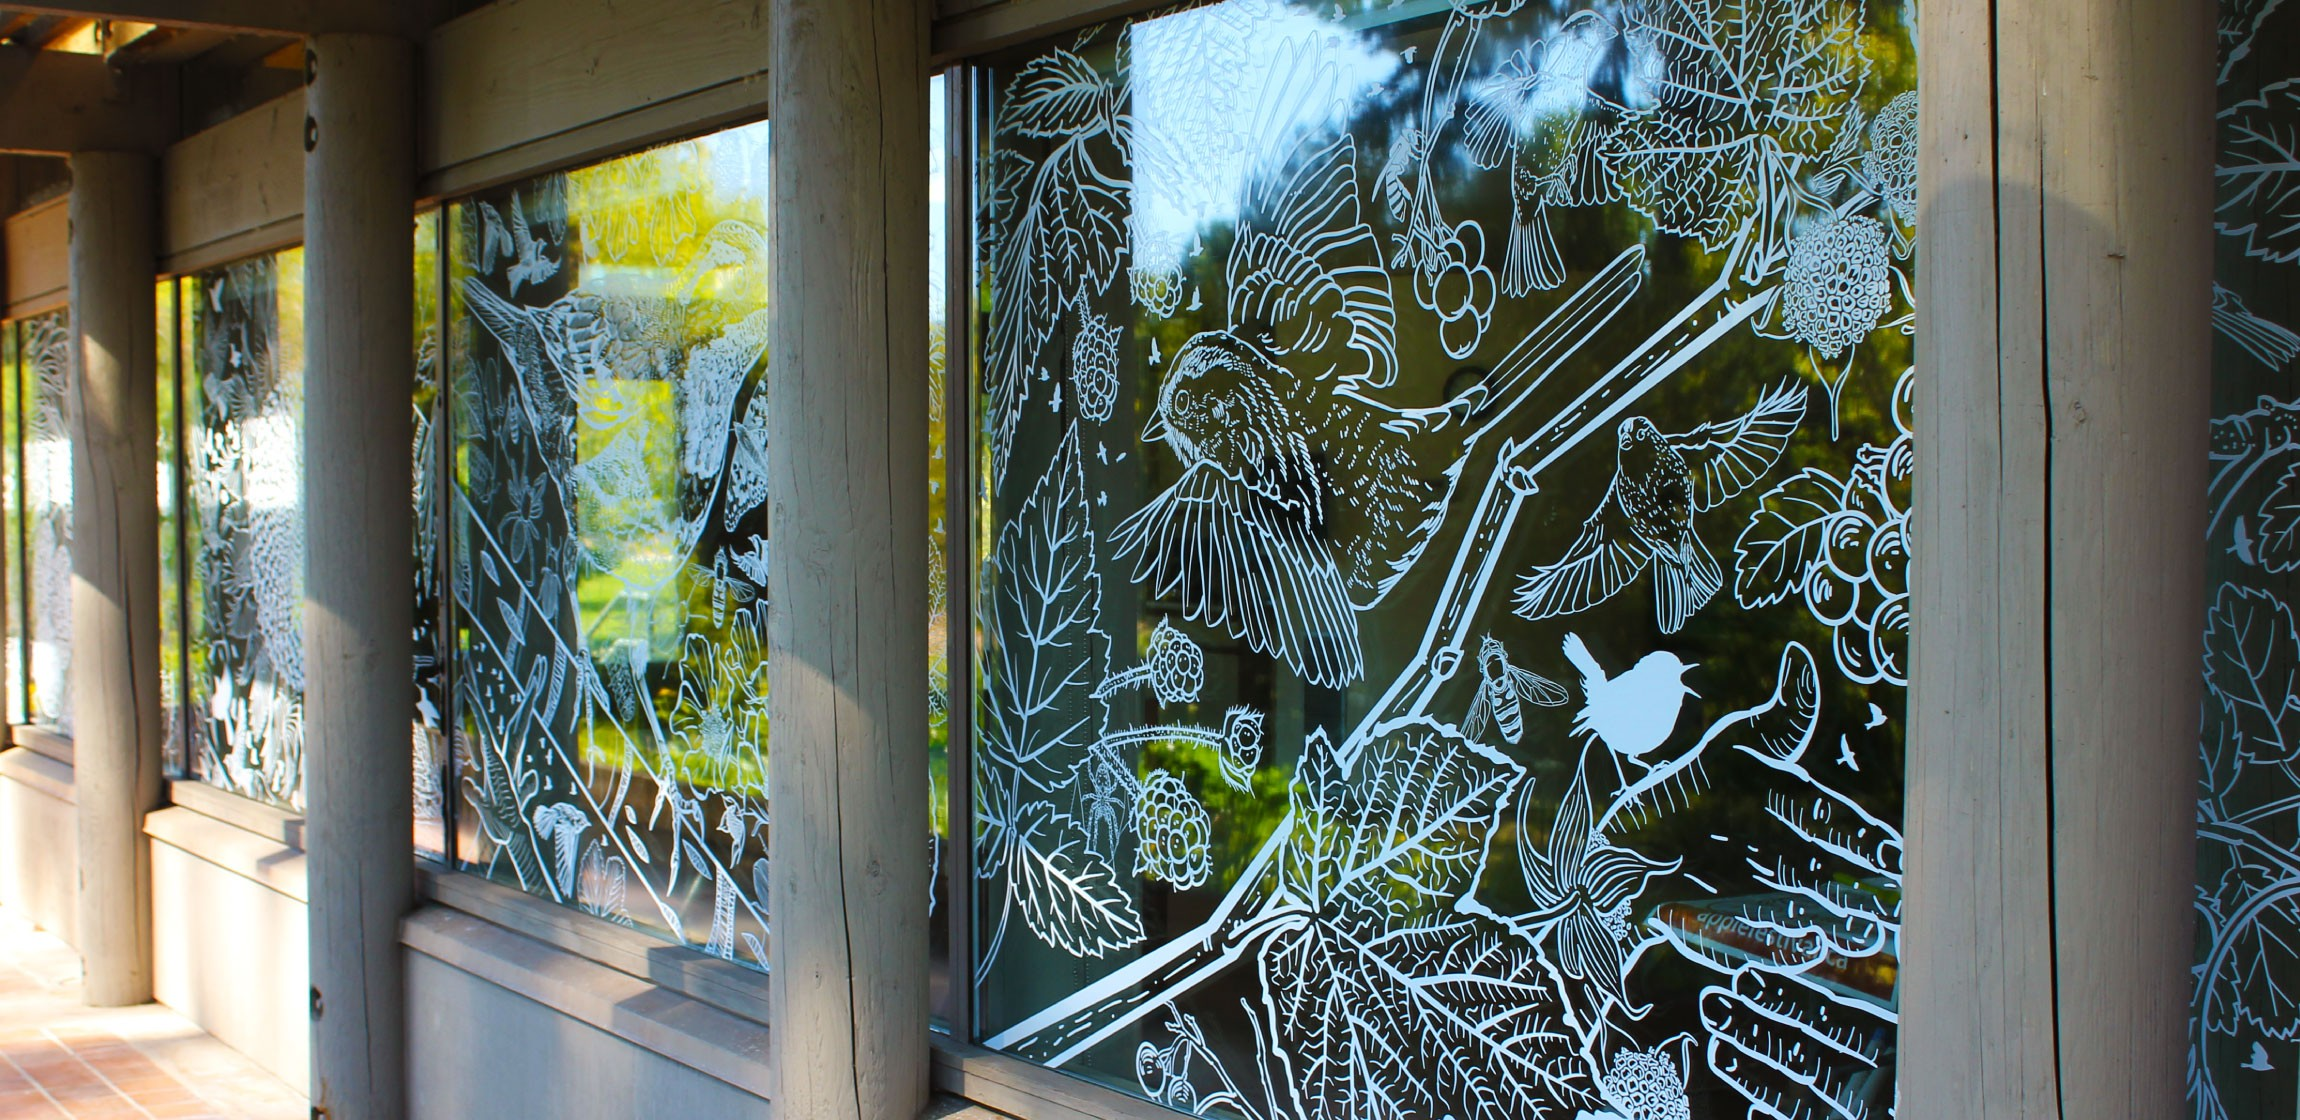 Windows at the UBC Botanical Gardens, which have been covered in artistic decals to prevent birds from flying into them